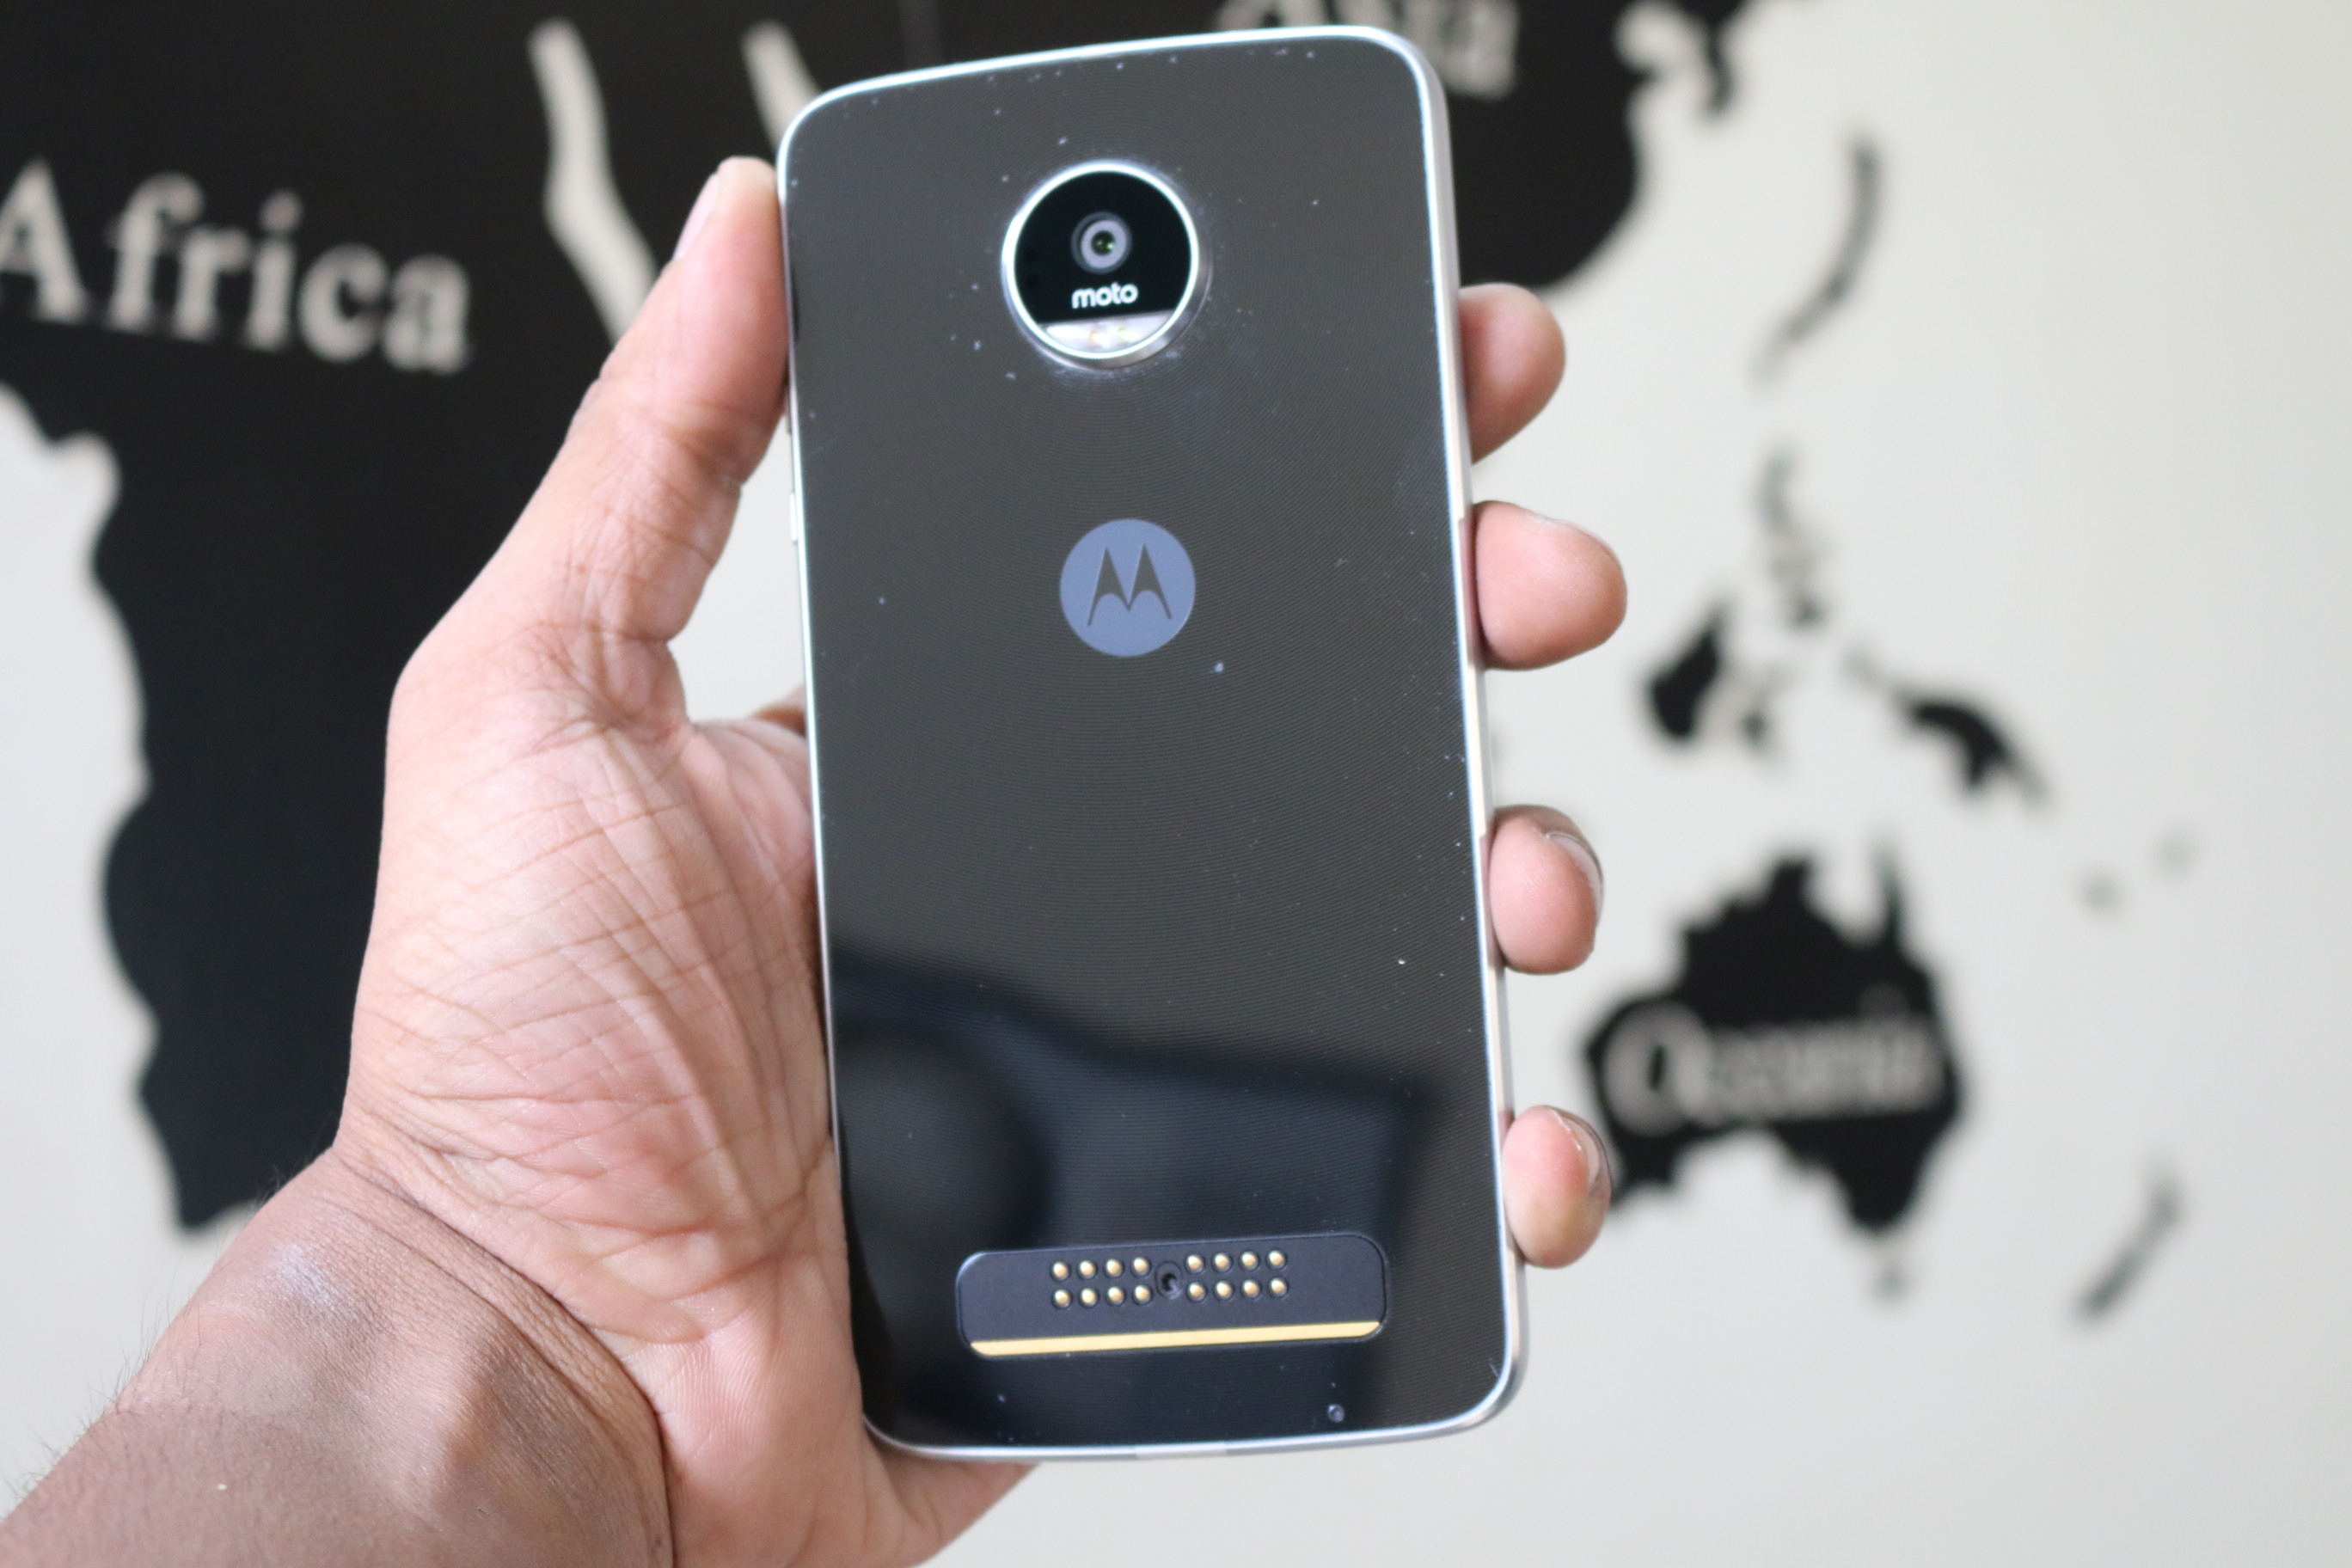 Moto z moto z play now available in india price specifications and - Moto Z Play